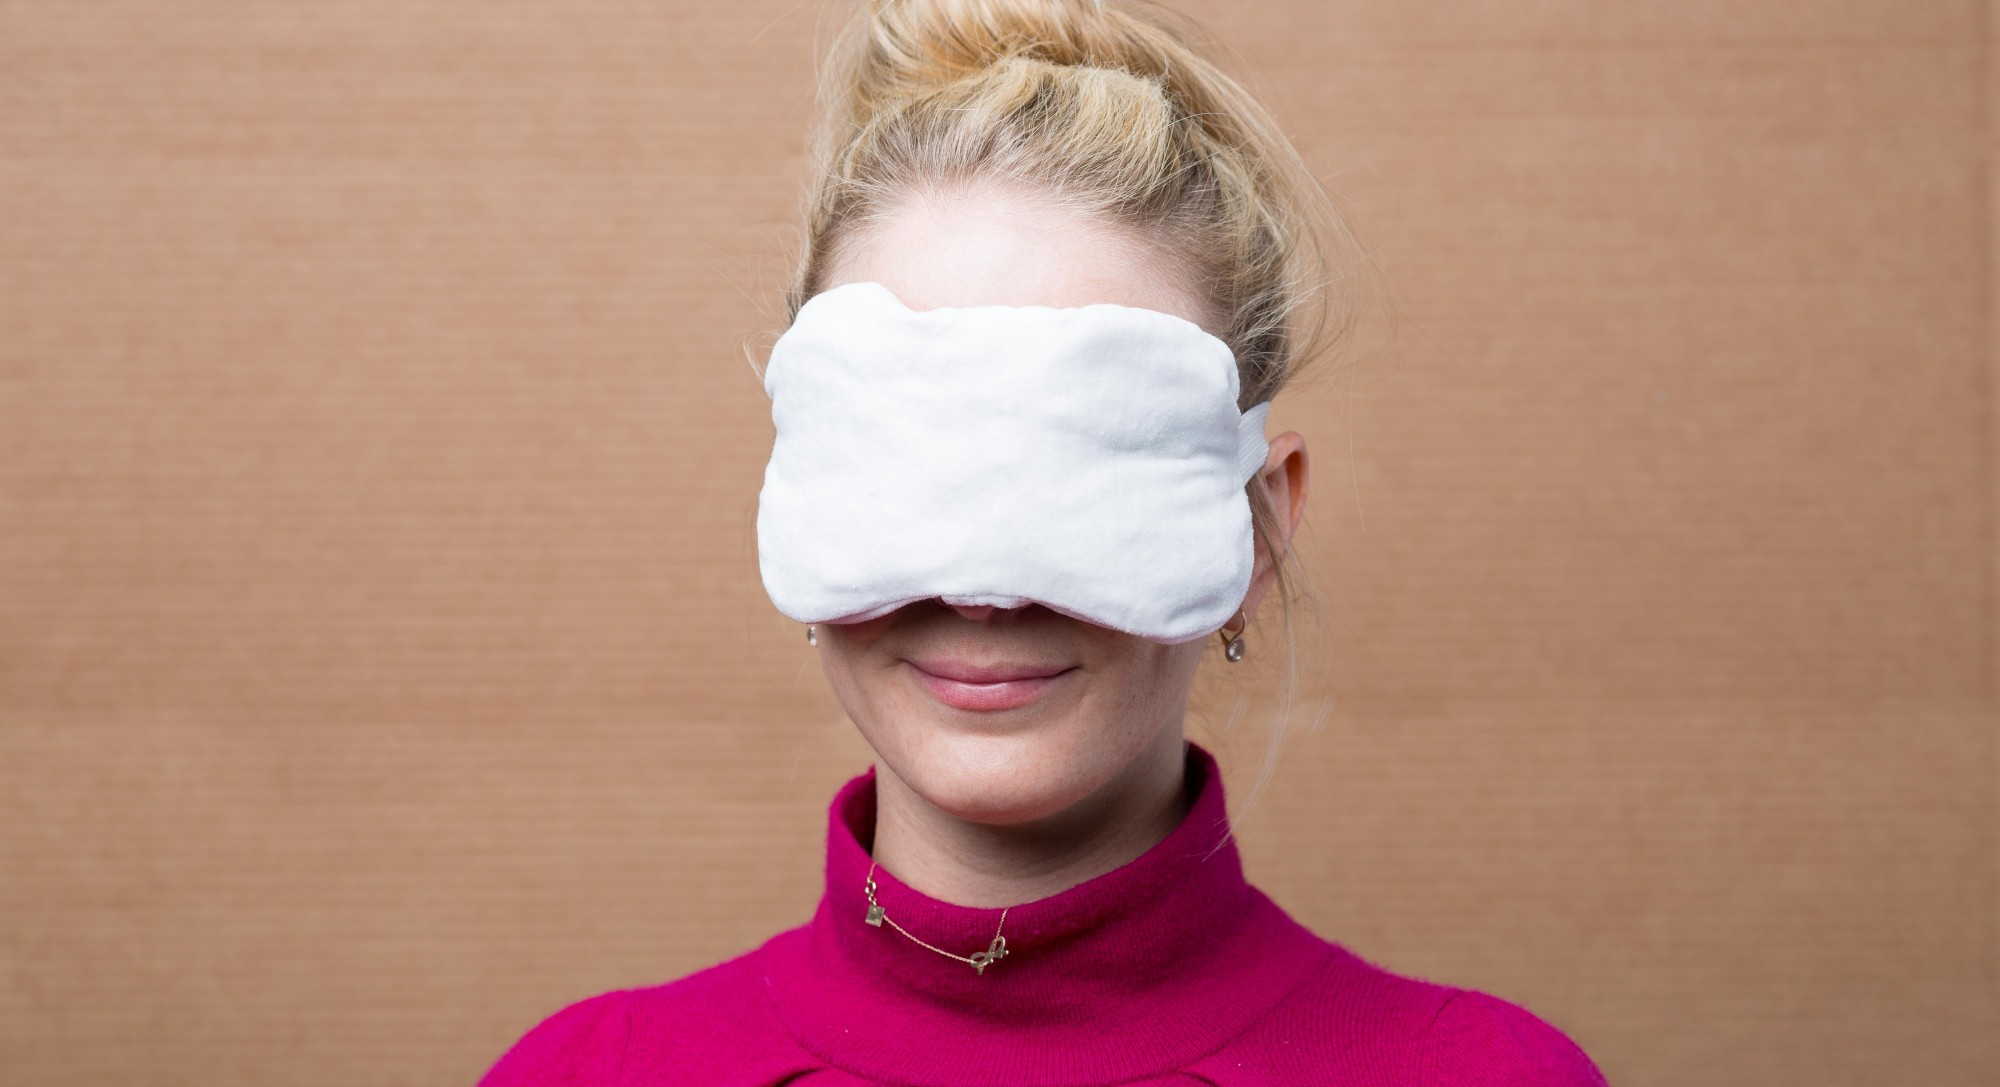 Healthy Obsession: An Eye Mask That Instantly Soothes a Pounding Head